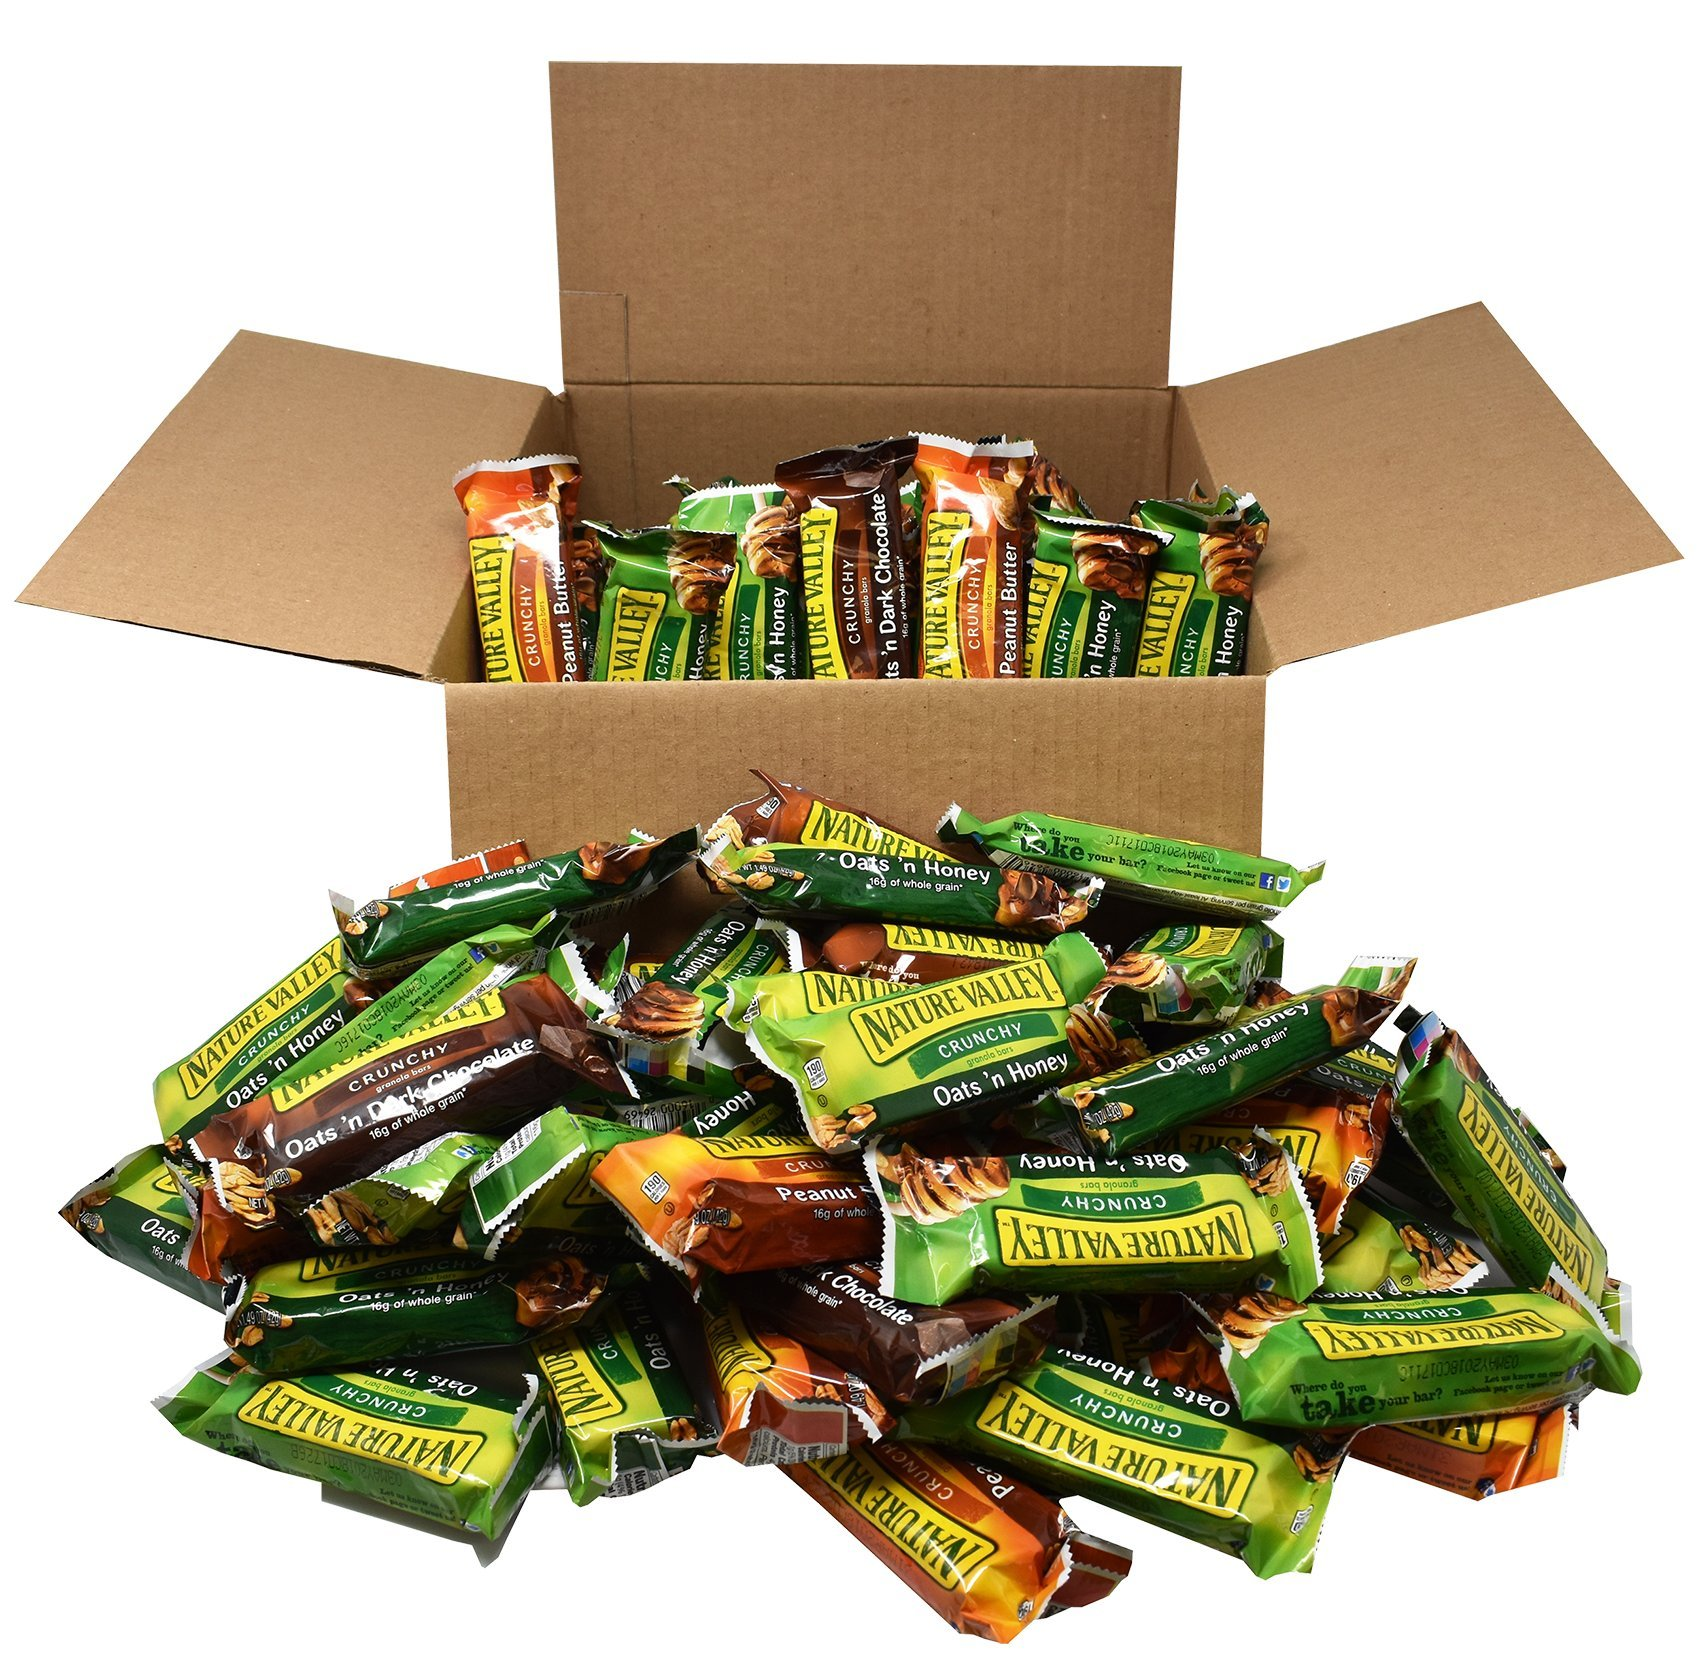 Office Snacks Nature Valley Bars Bulk Variety Pack of 120 - Office Snacks, School Lunches, Meetings by Blue Ribbon (Image #4)